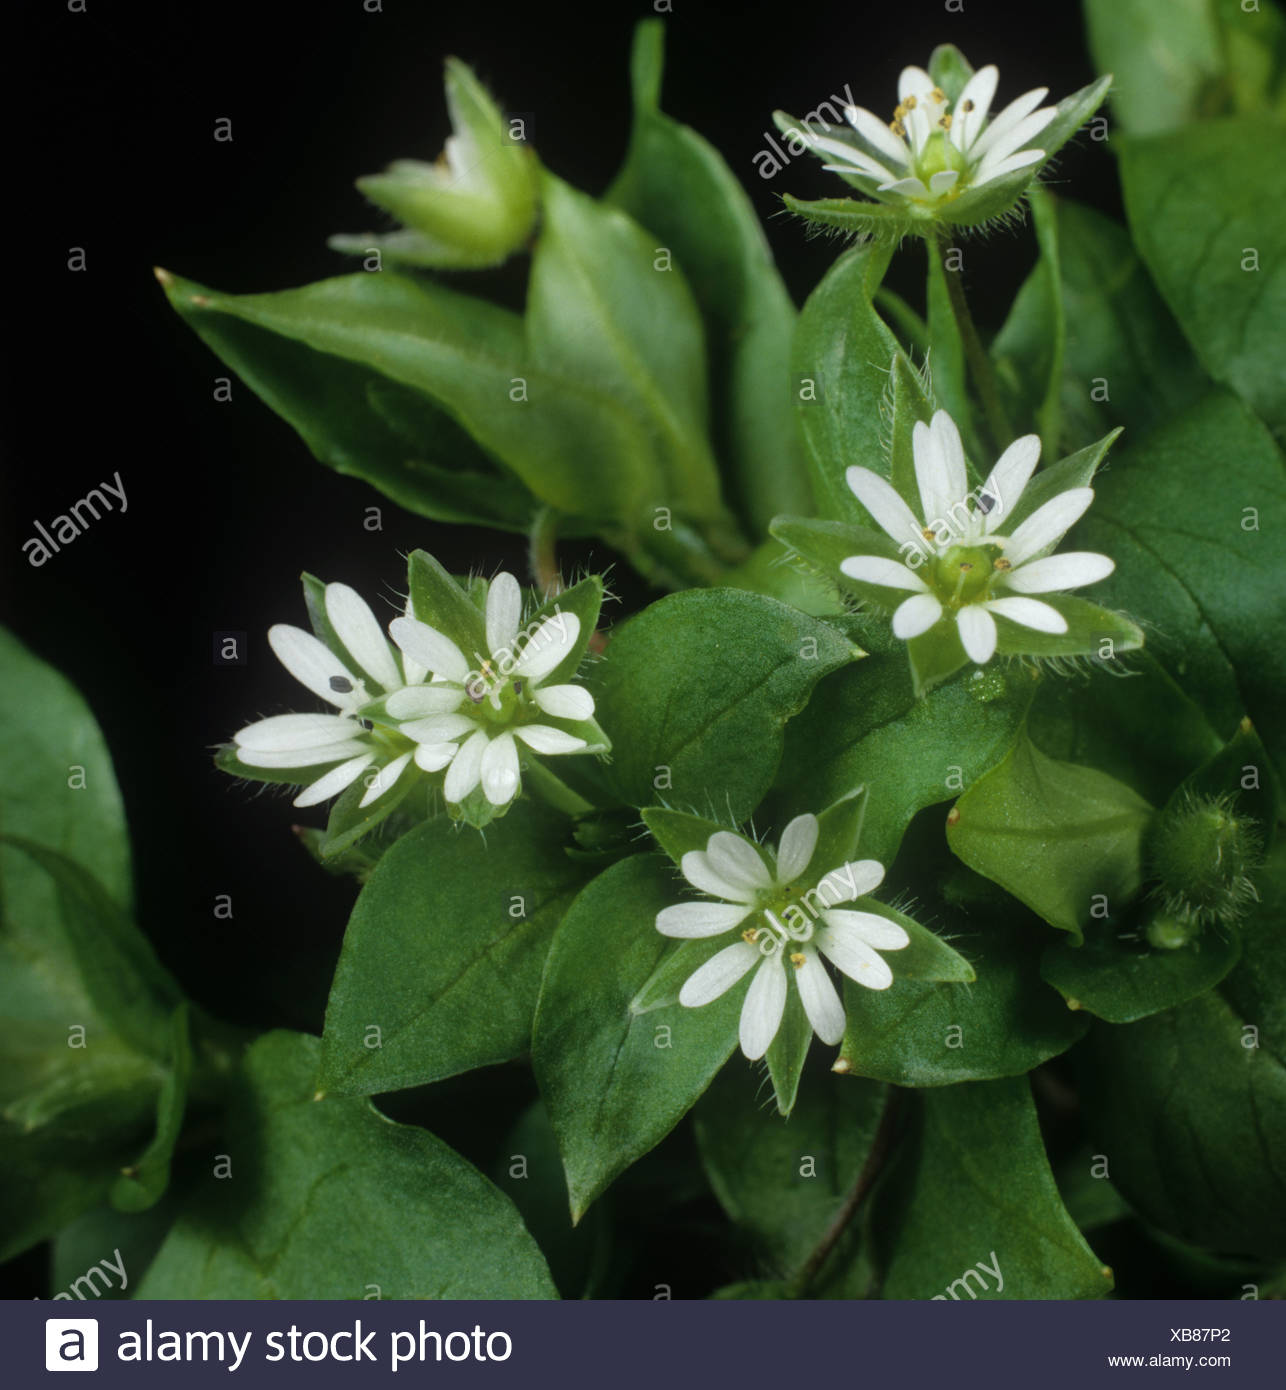 Chickweed Stellaria media fiori in close up Immagini Stock